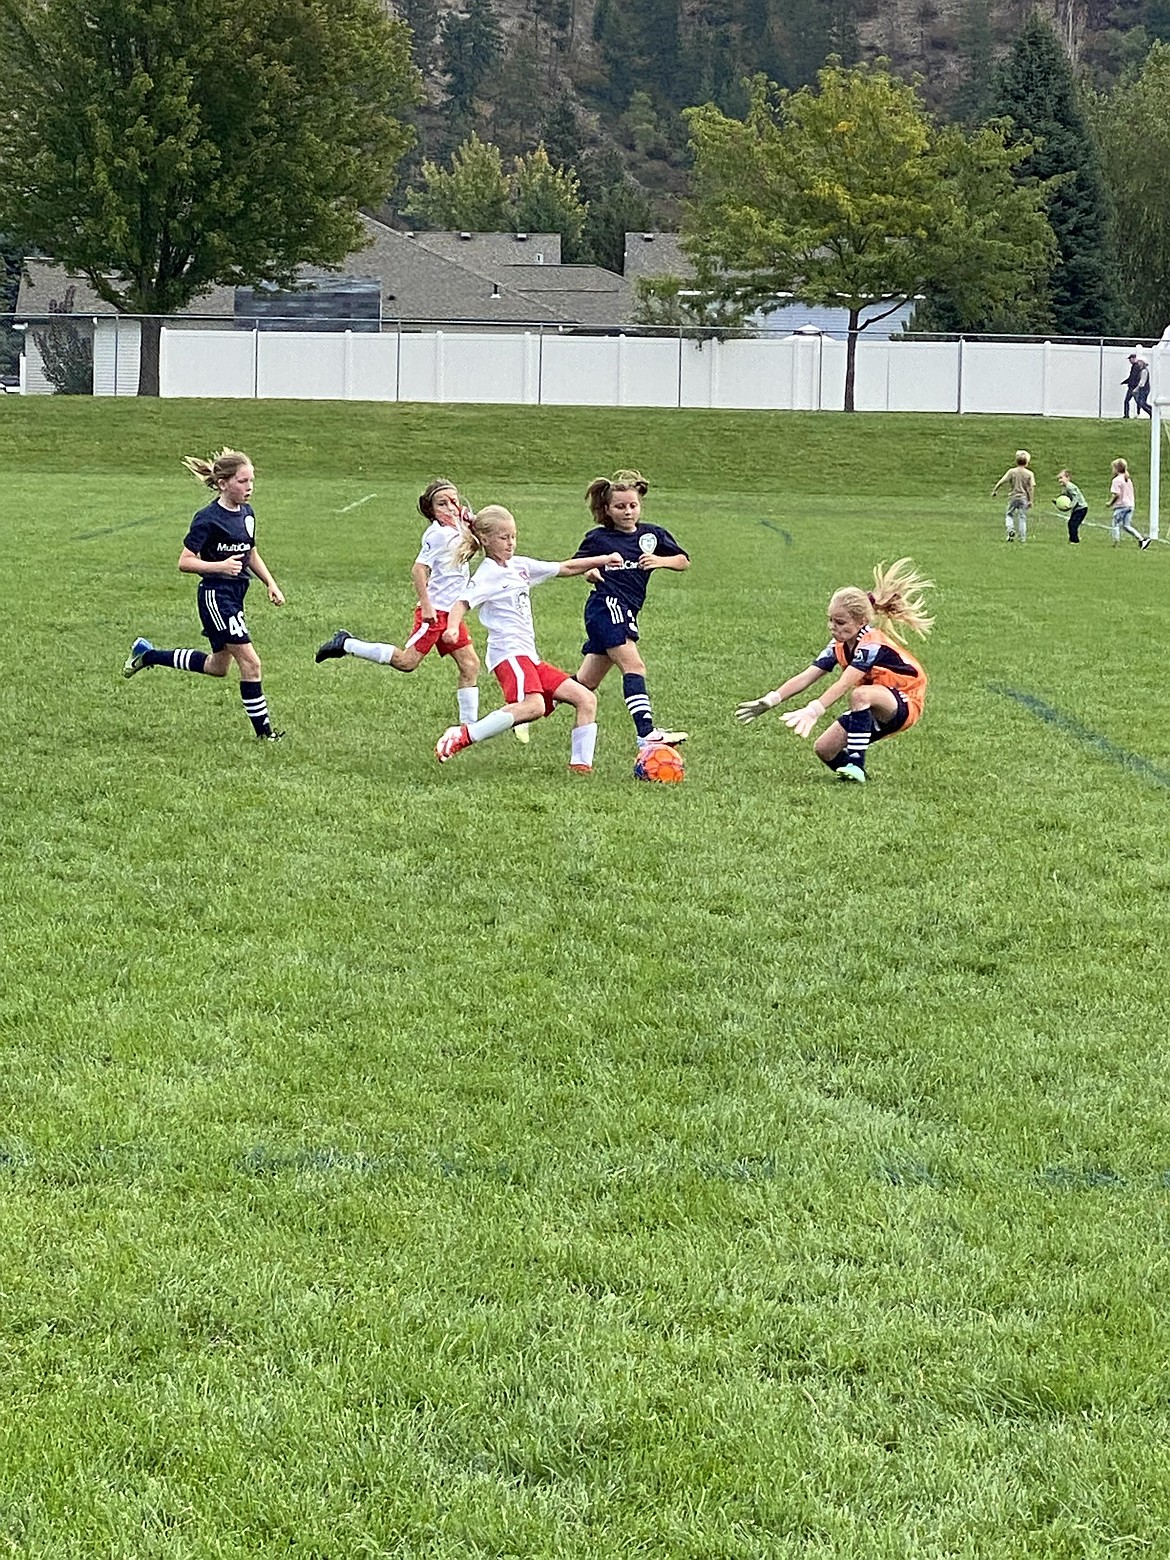 Photo by BRITNEY NUSSER The Thorns North FC 2011 girls yellow soccer team beat the Spokane Scotties 2-0 at the Dwight Merkel Sports Complex in Spokane on Saturday. Brightyn Gatten and Aubrey Sargent each scored one goal for the Thorns. Pictured in white is Brightyn Gatten closing in on the keeper, with teammate Hailey Viaud to her left.